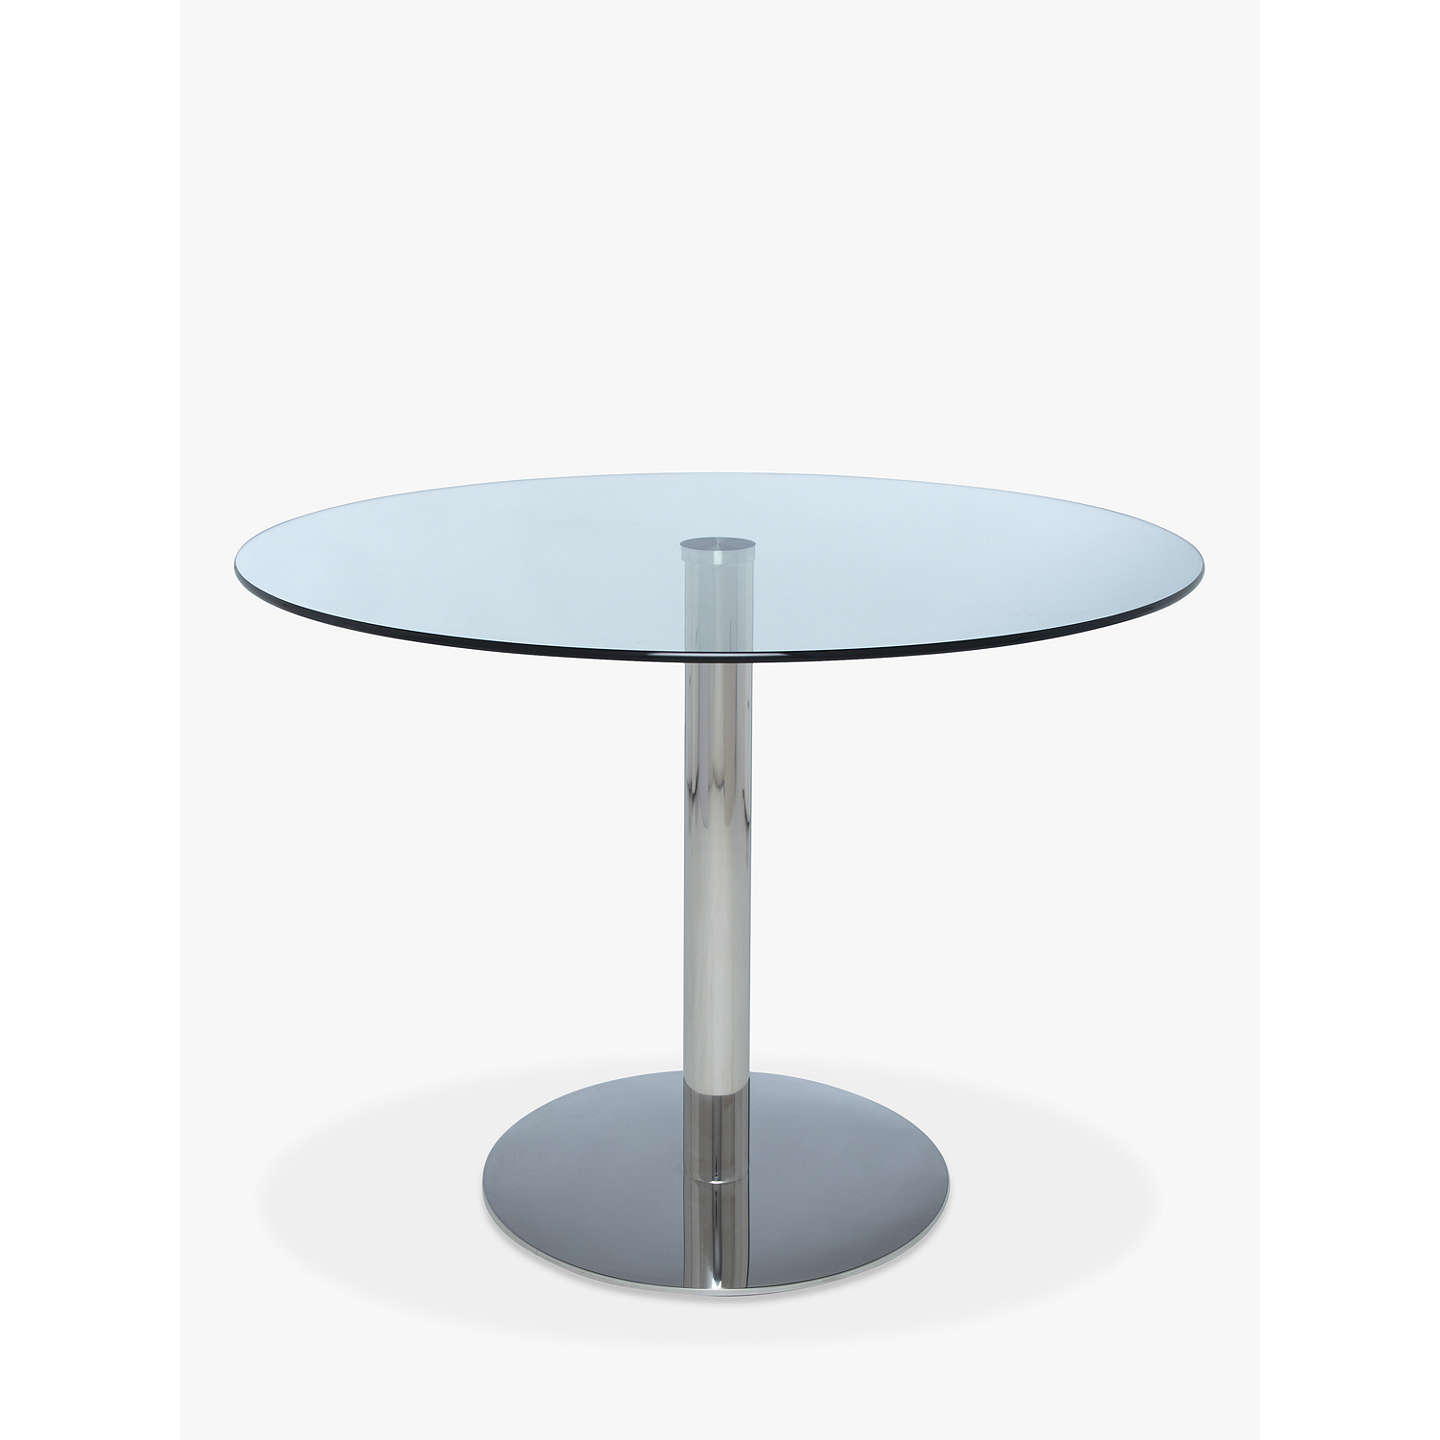 John lewis enzo 4 seater round glass top dining table at for Round glass top dining table